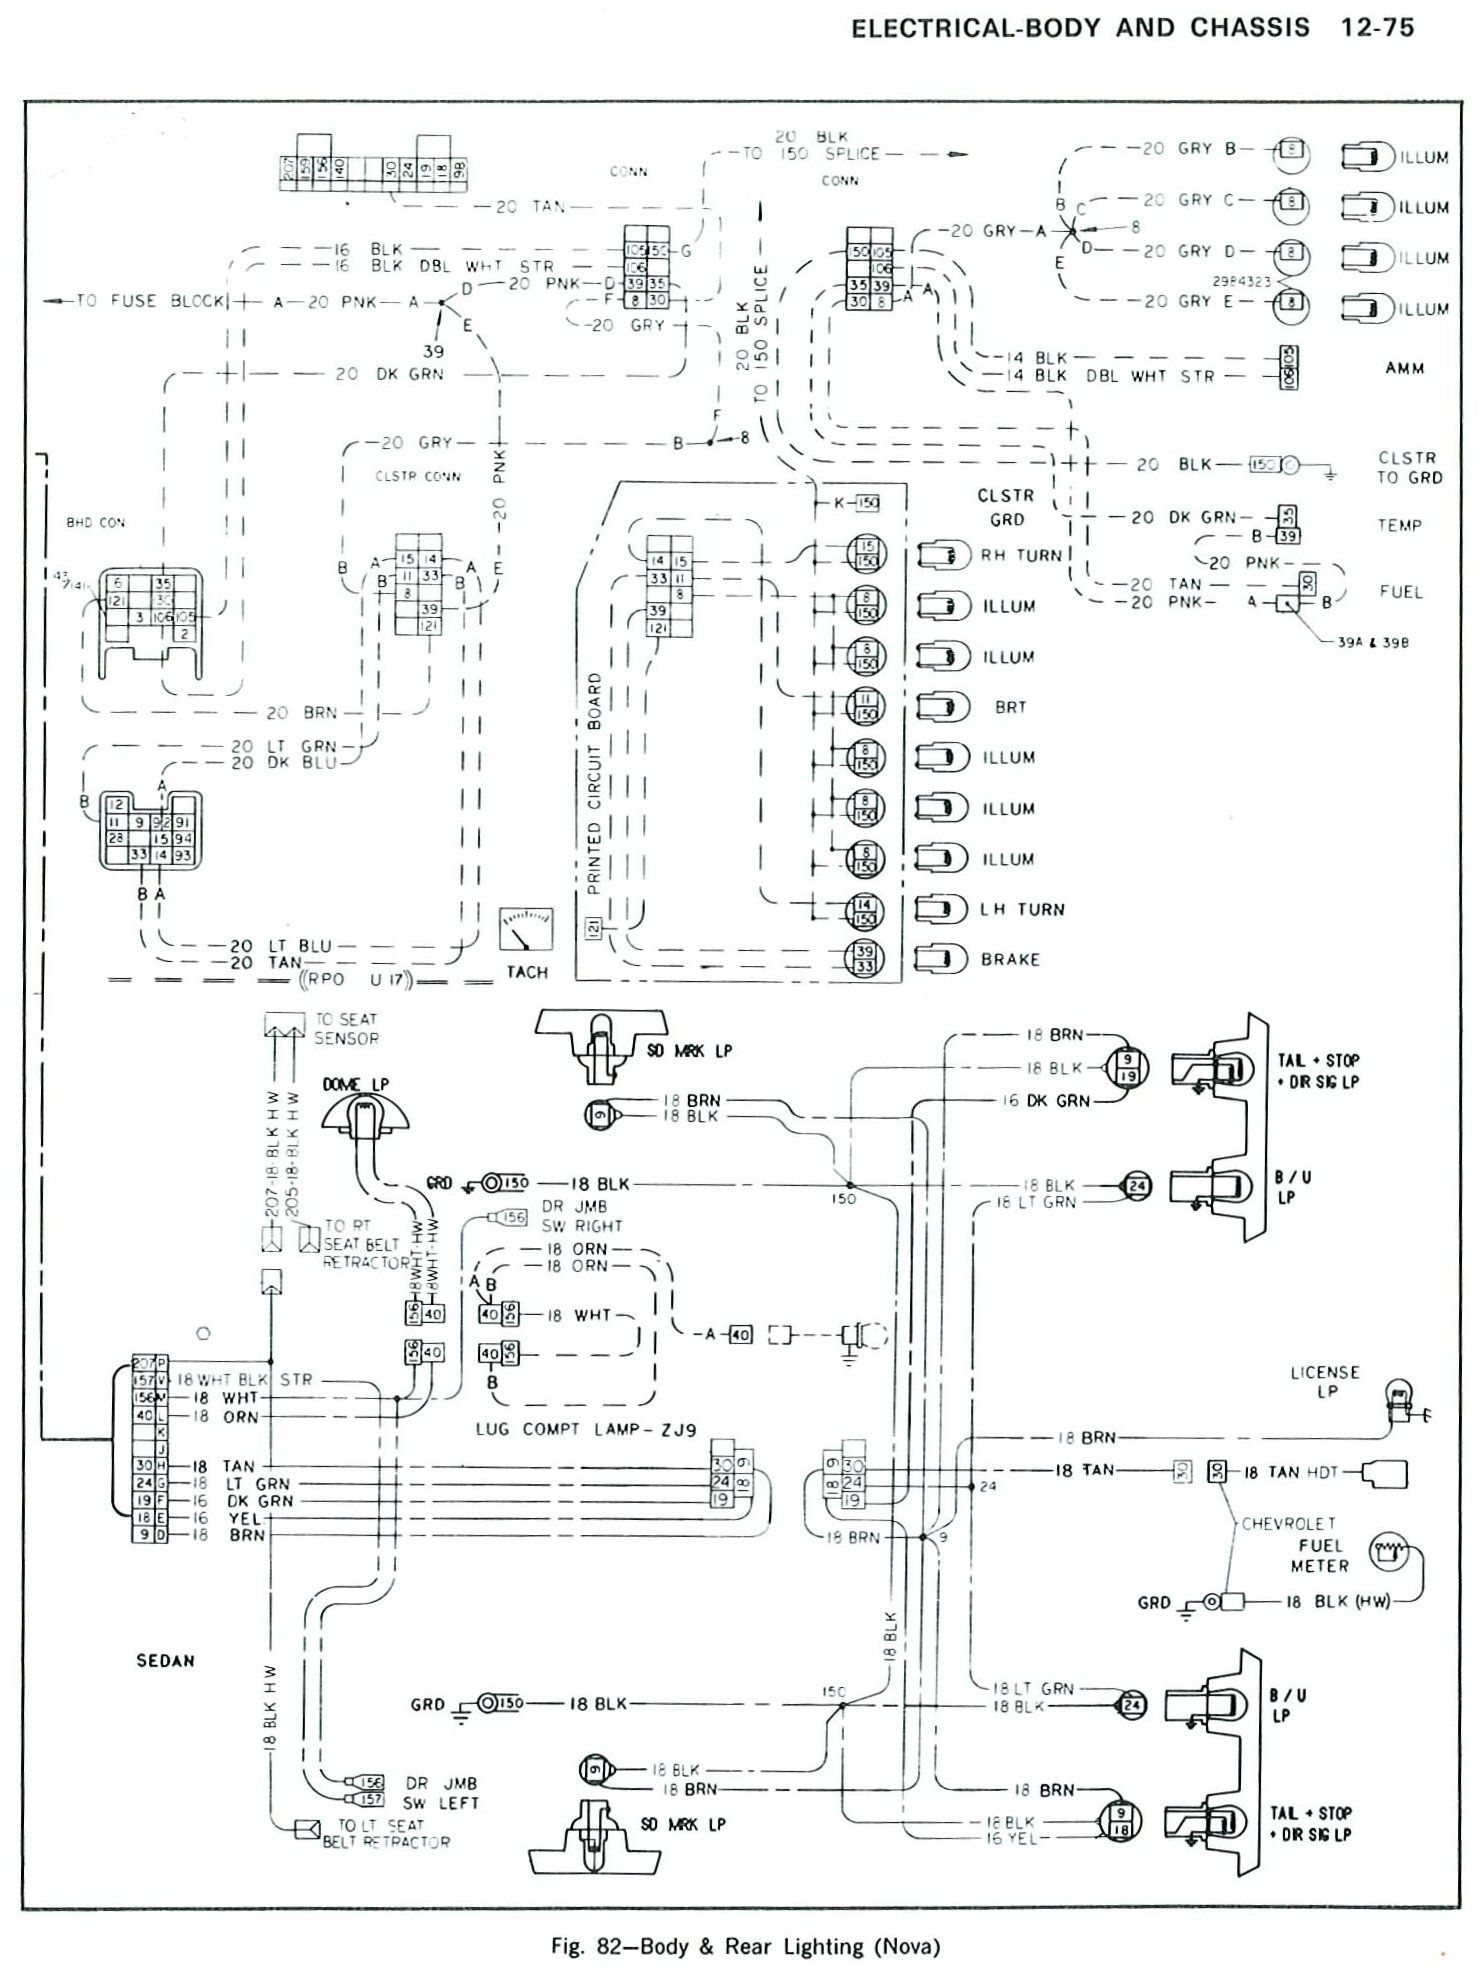 1979 Chevy Nova Wiring Diagram - wiring diagrams schematics